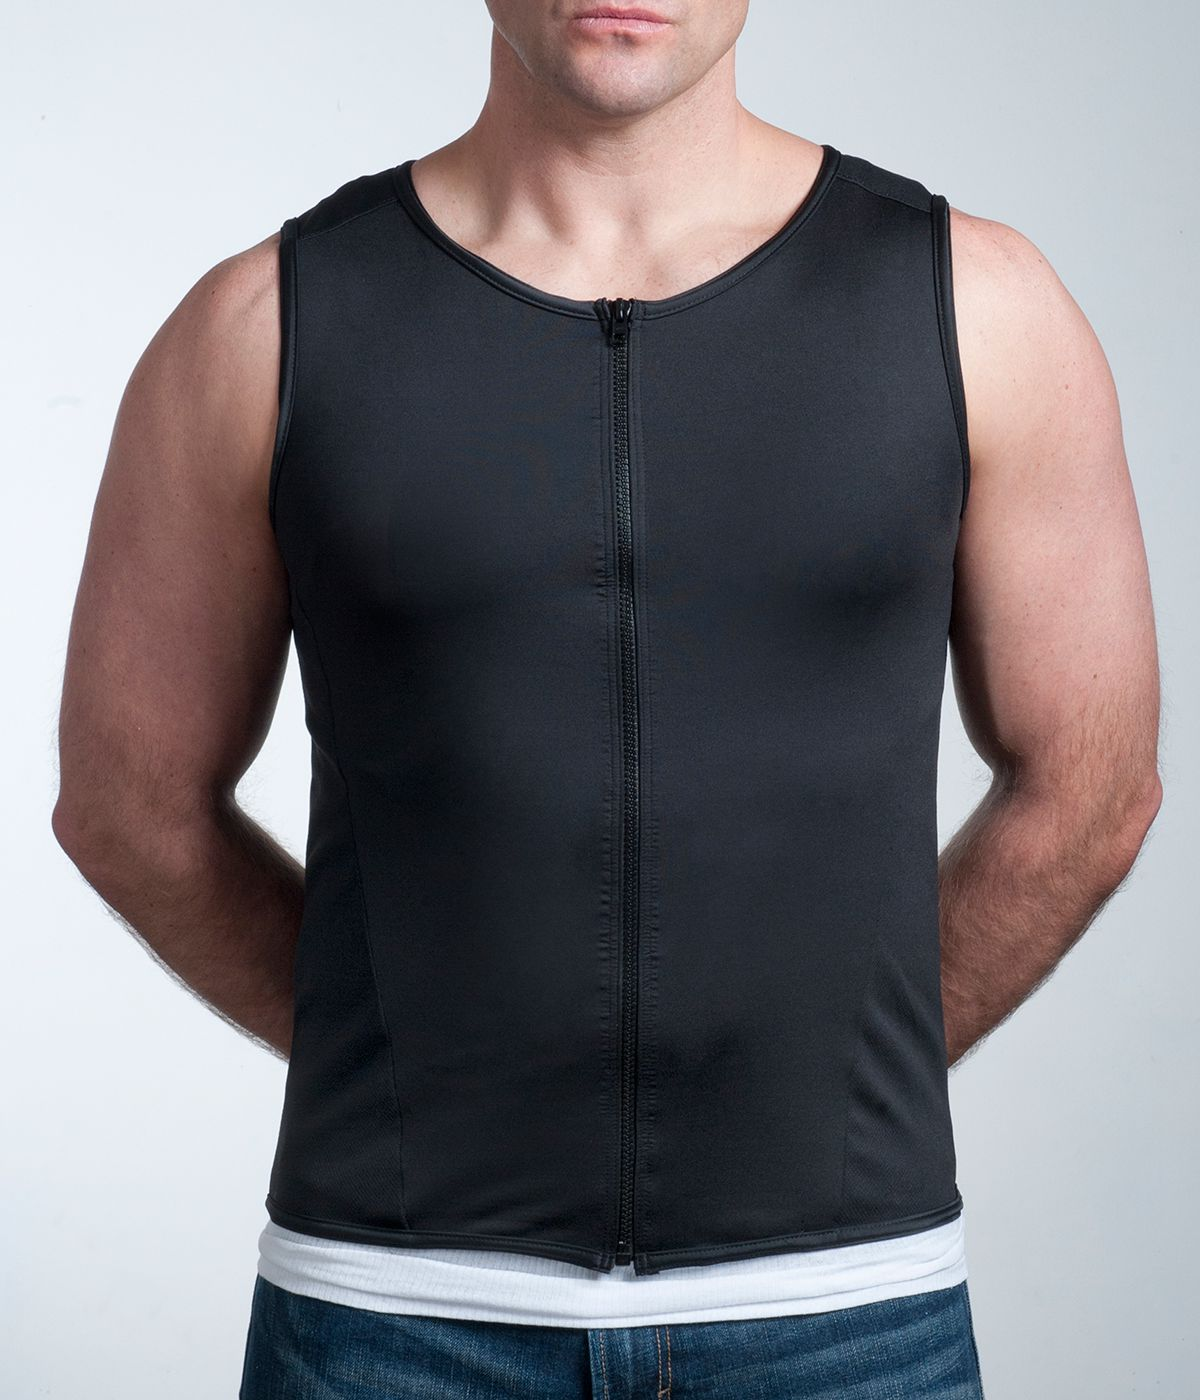 Spand-Ice   Hot + Cold Therapy   Revive Tank - Mens Front